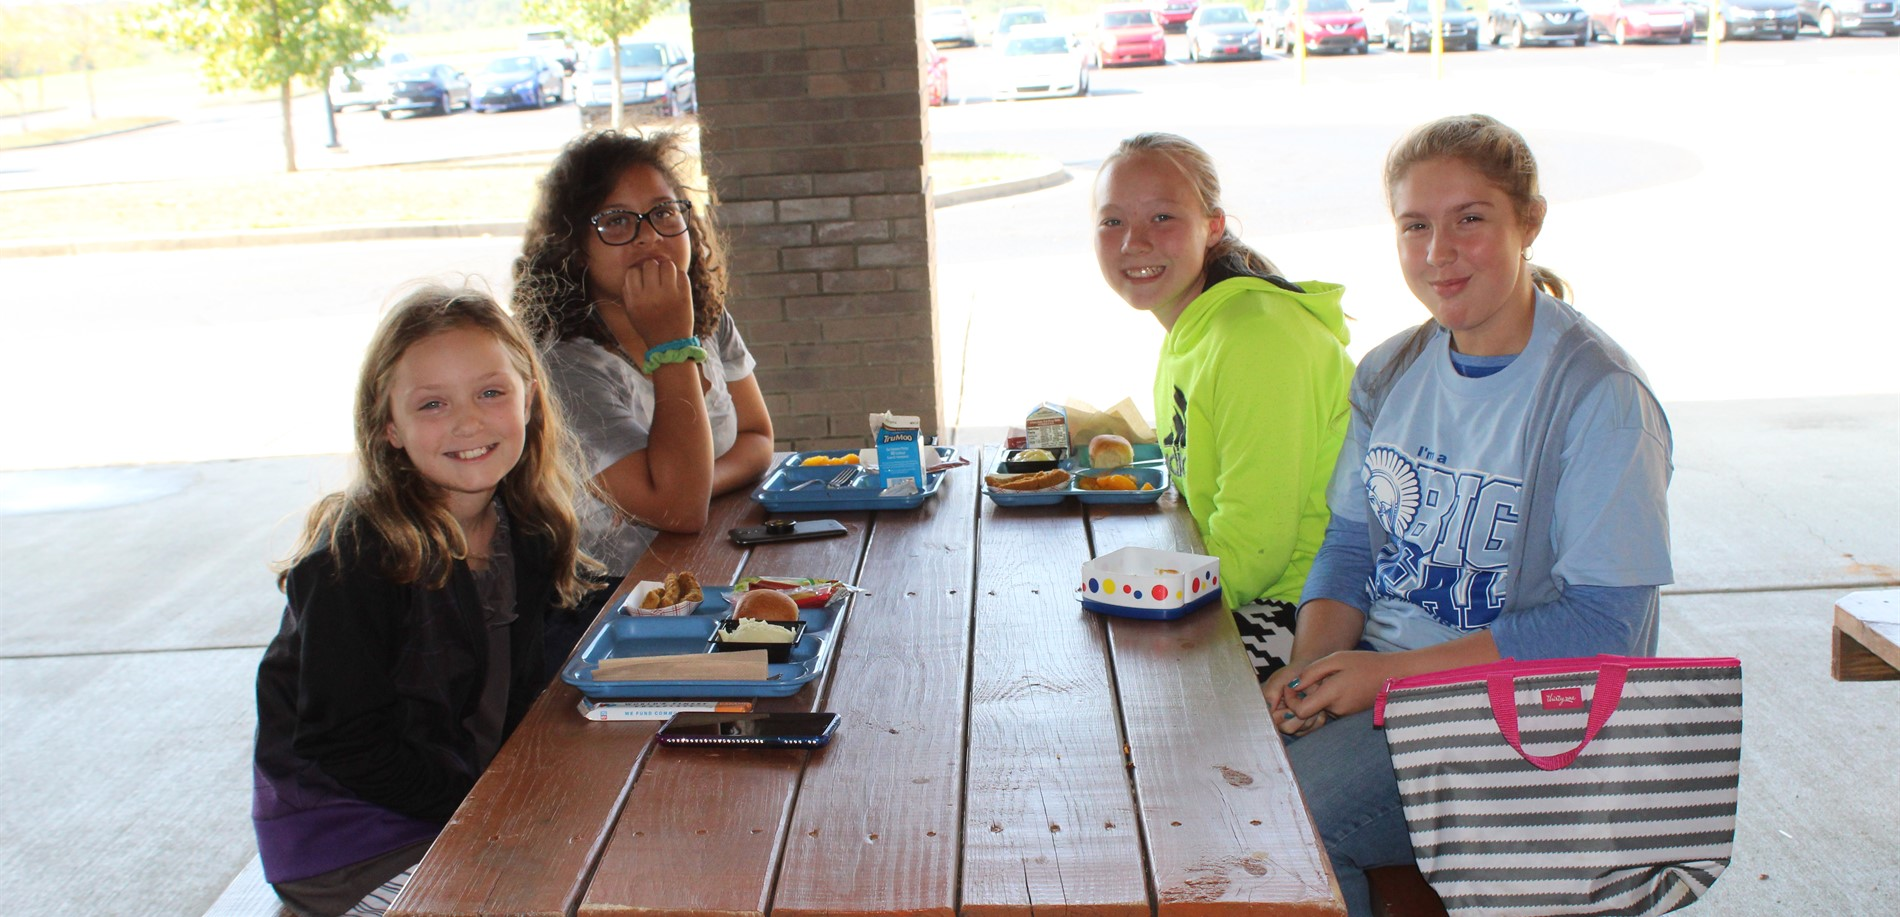 NMS Big Deals enjoying lunch at the picnic tables